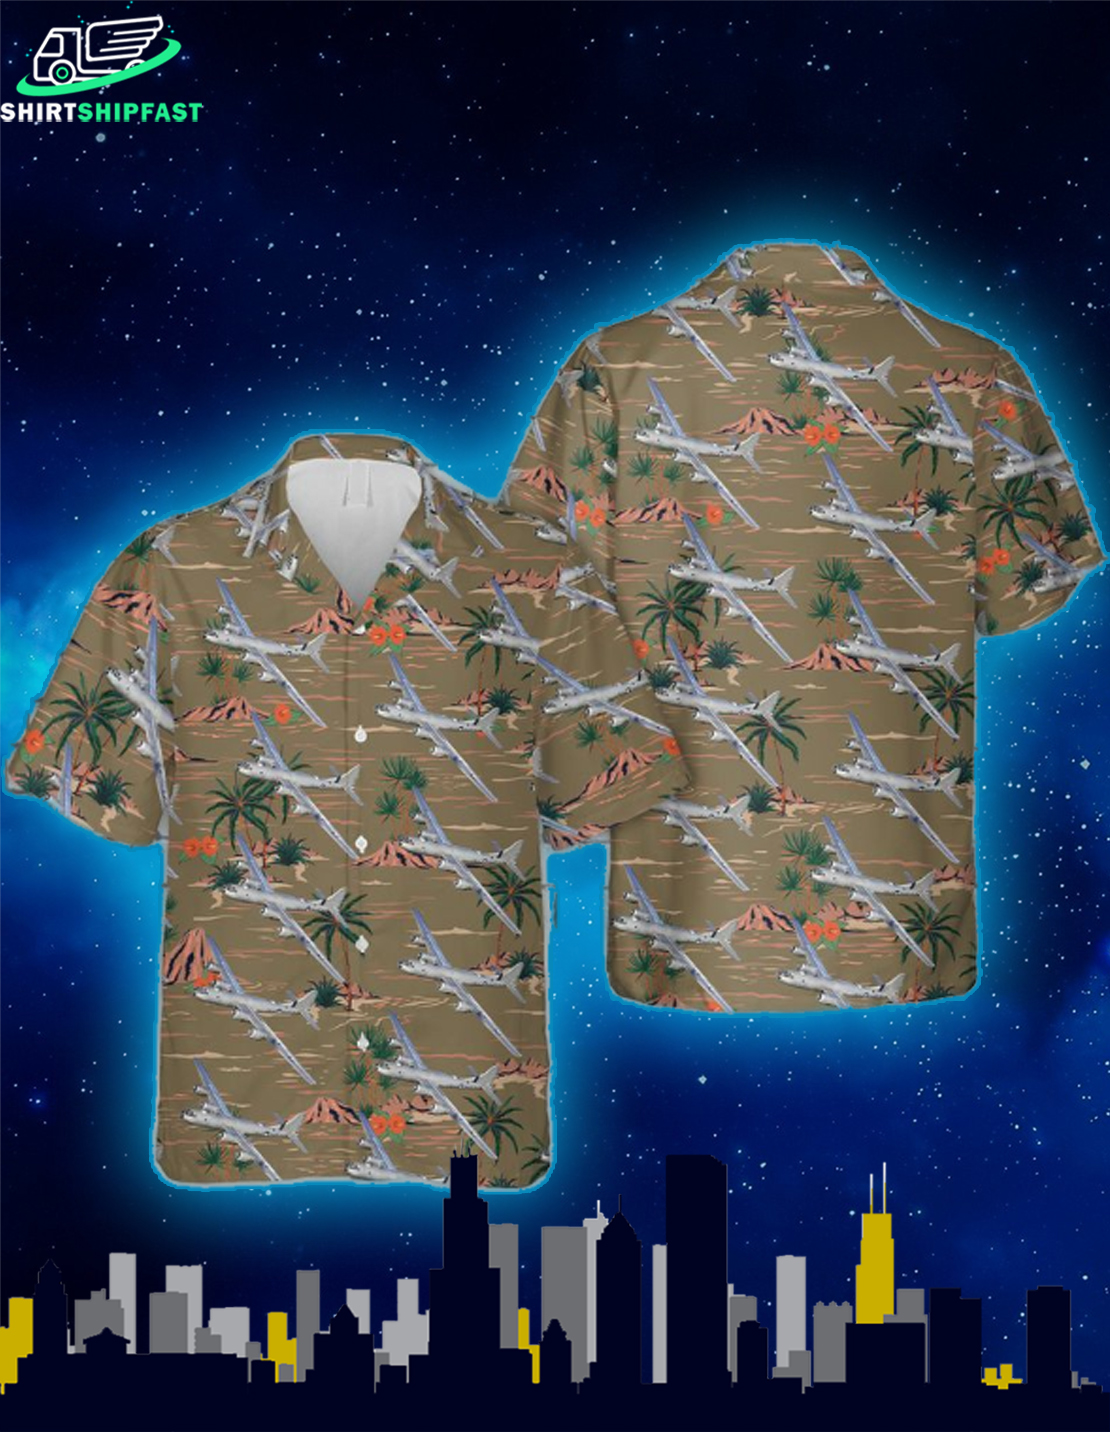 WB-29A Superfortress of the 53rd WRS Hawaiian Shirt - Picture 1